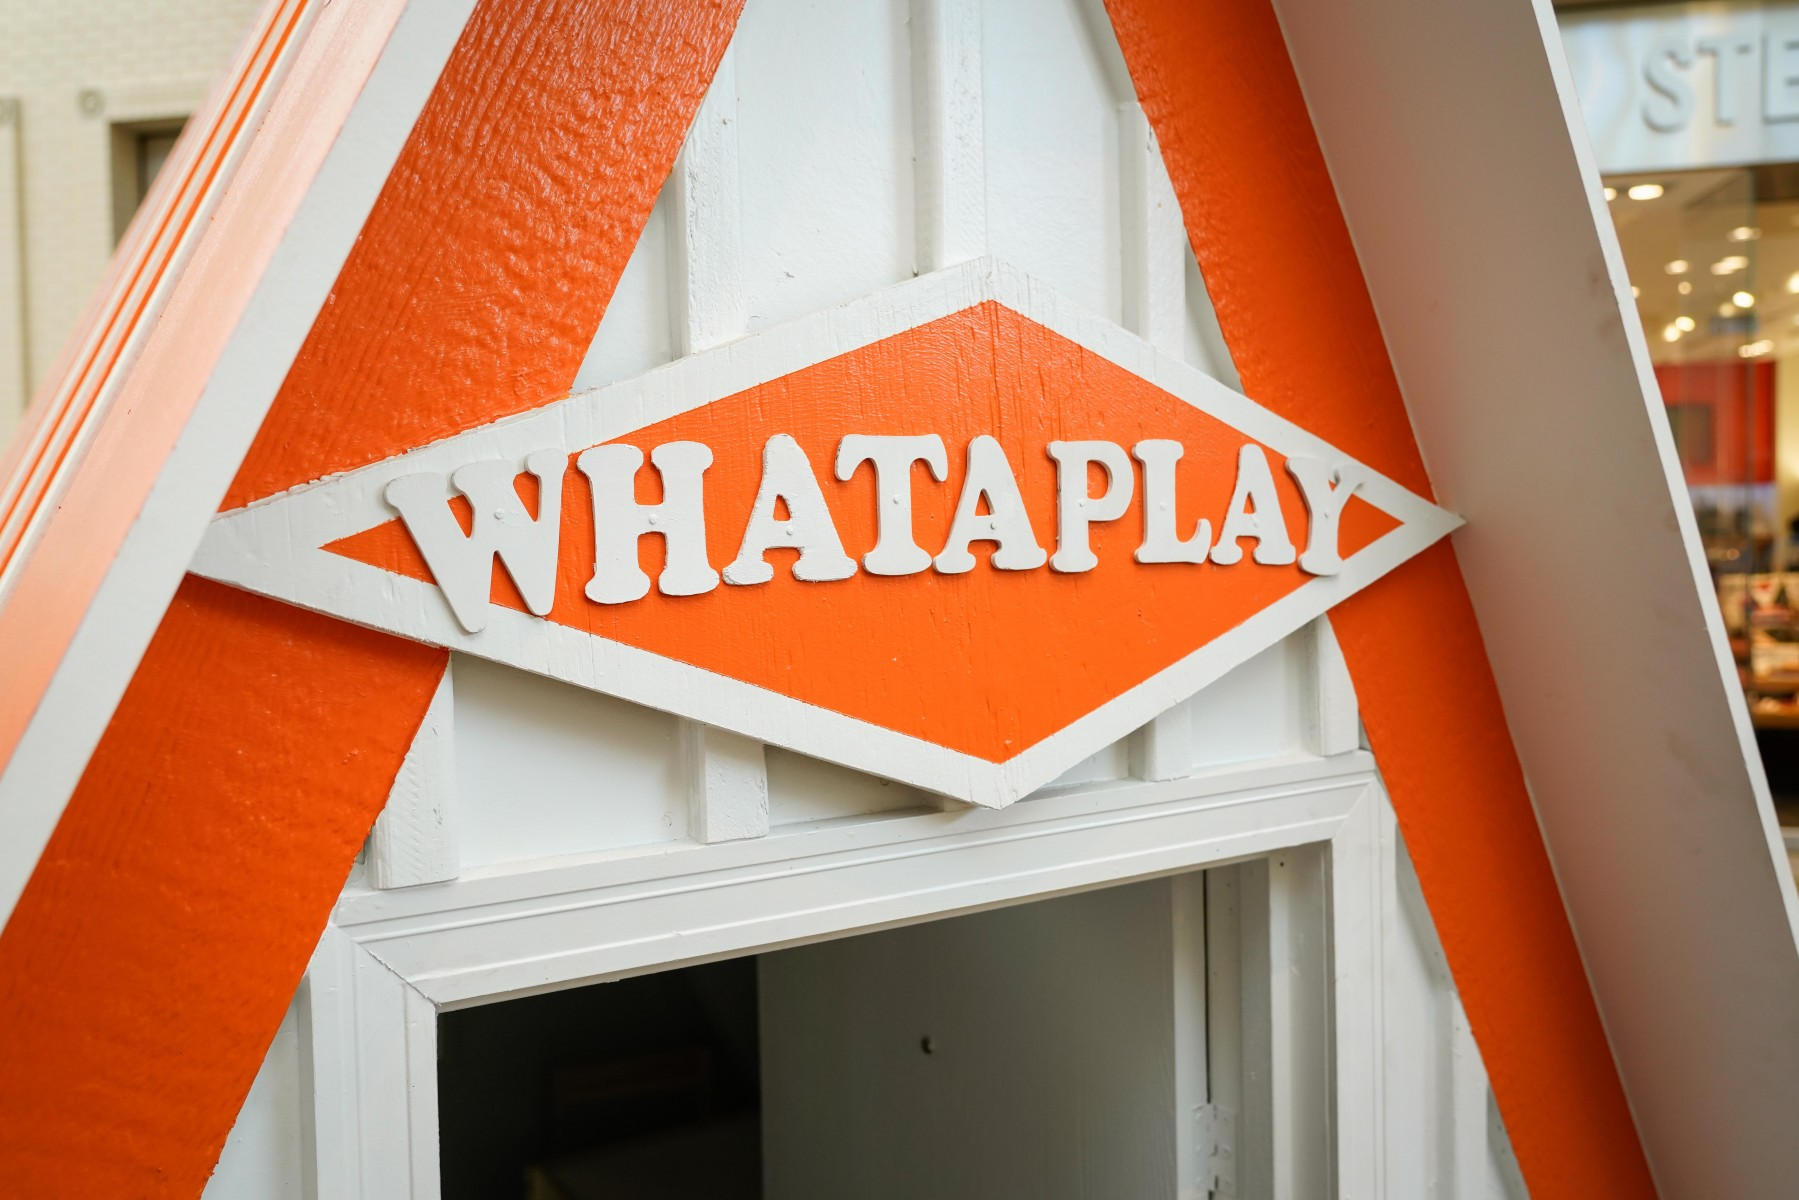 WhatPlayHouse